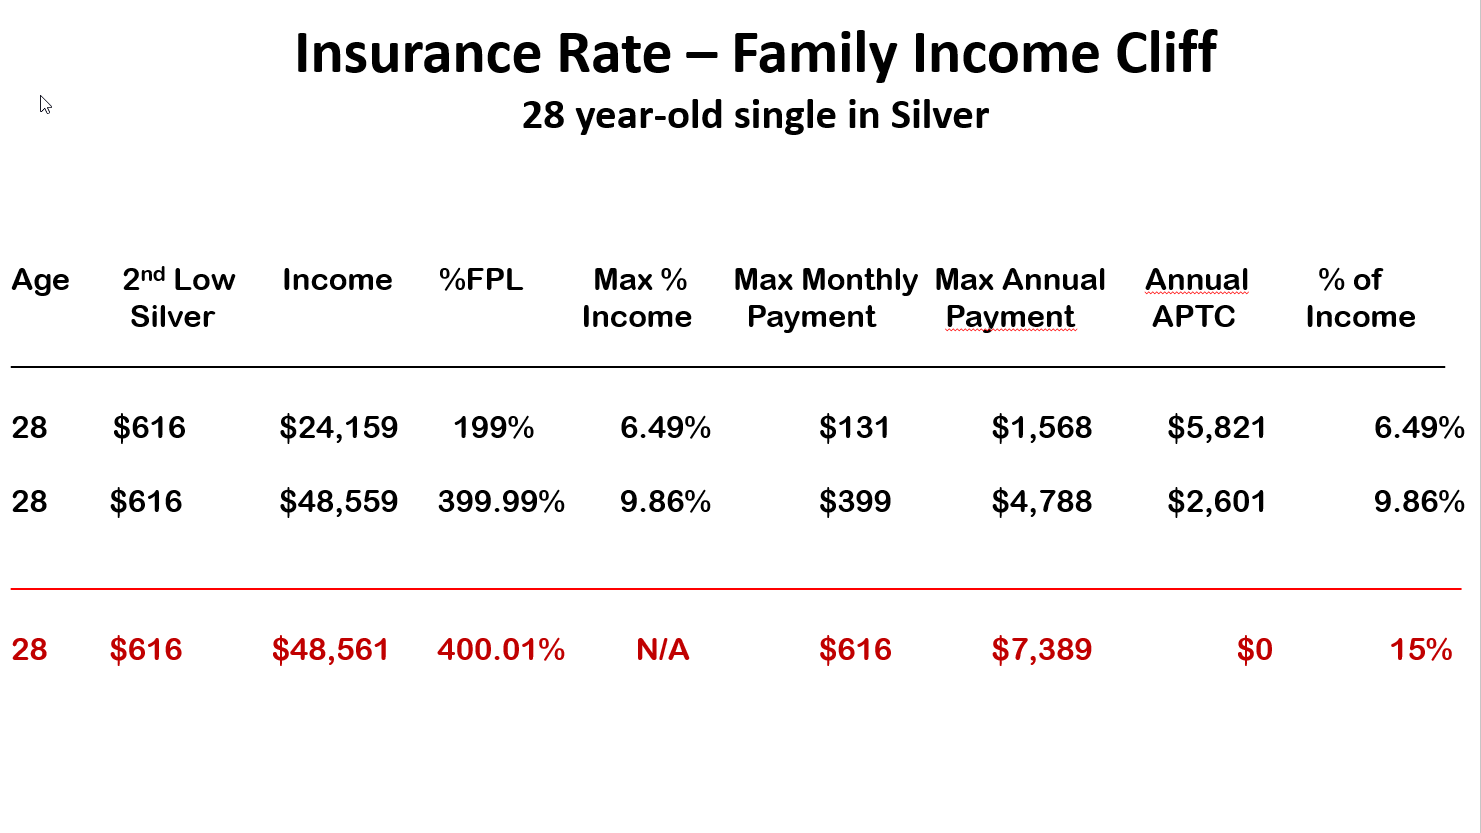 Insurance Rate - Family Income Cliff Single